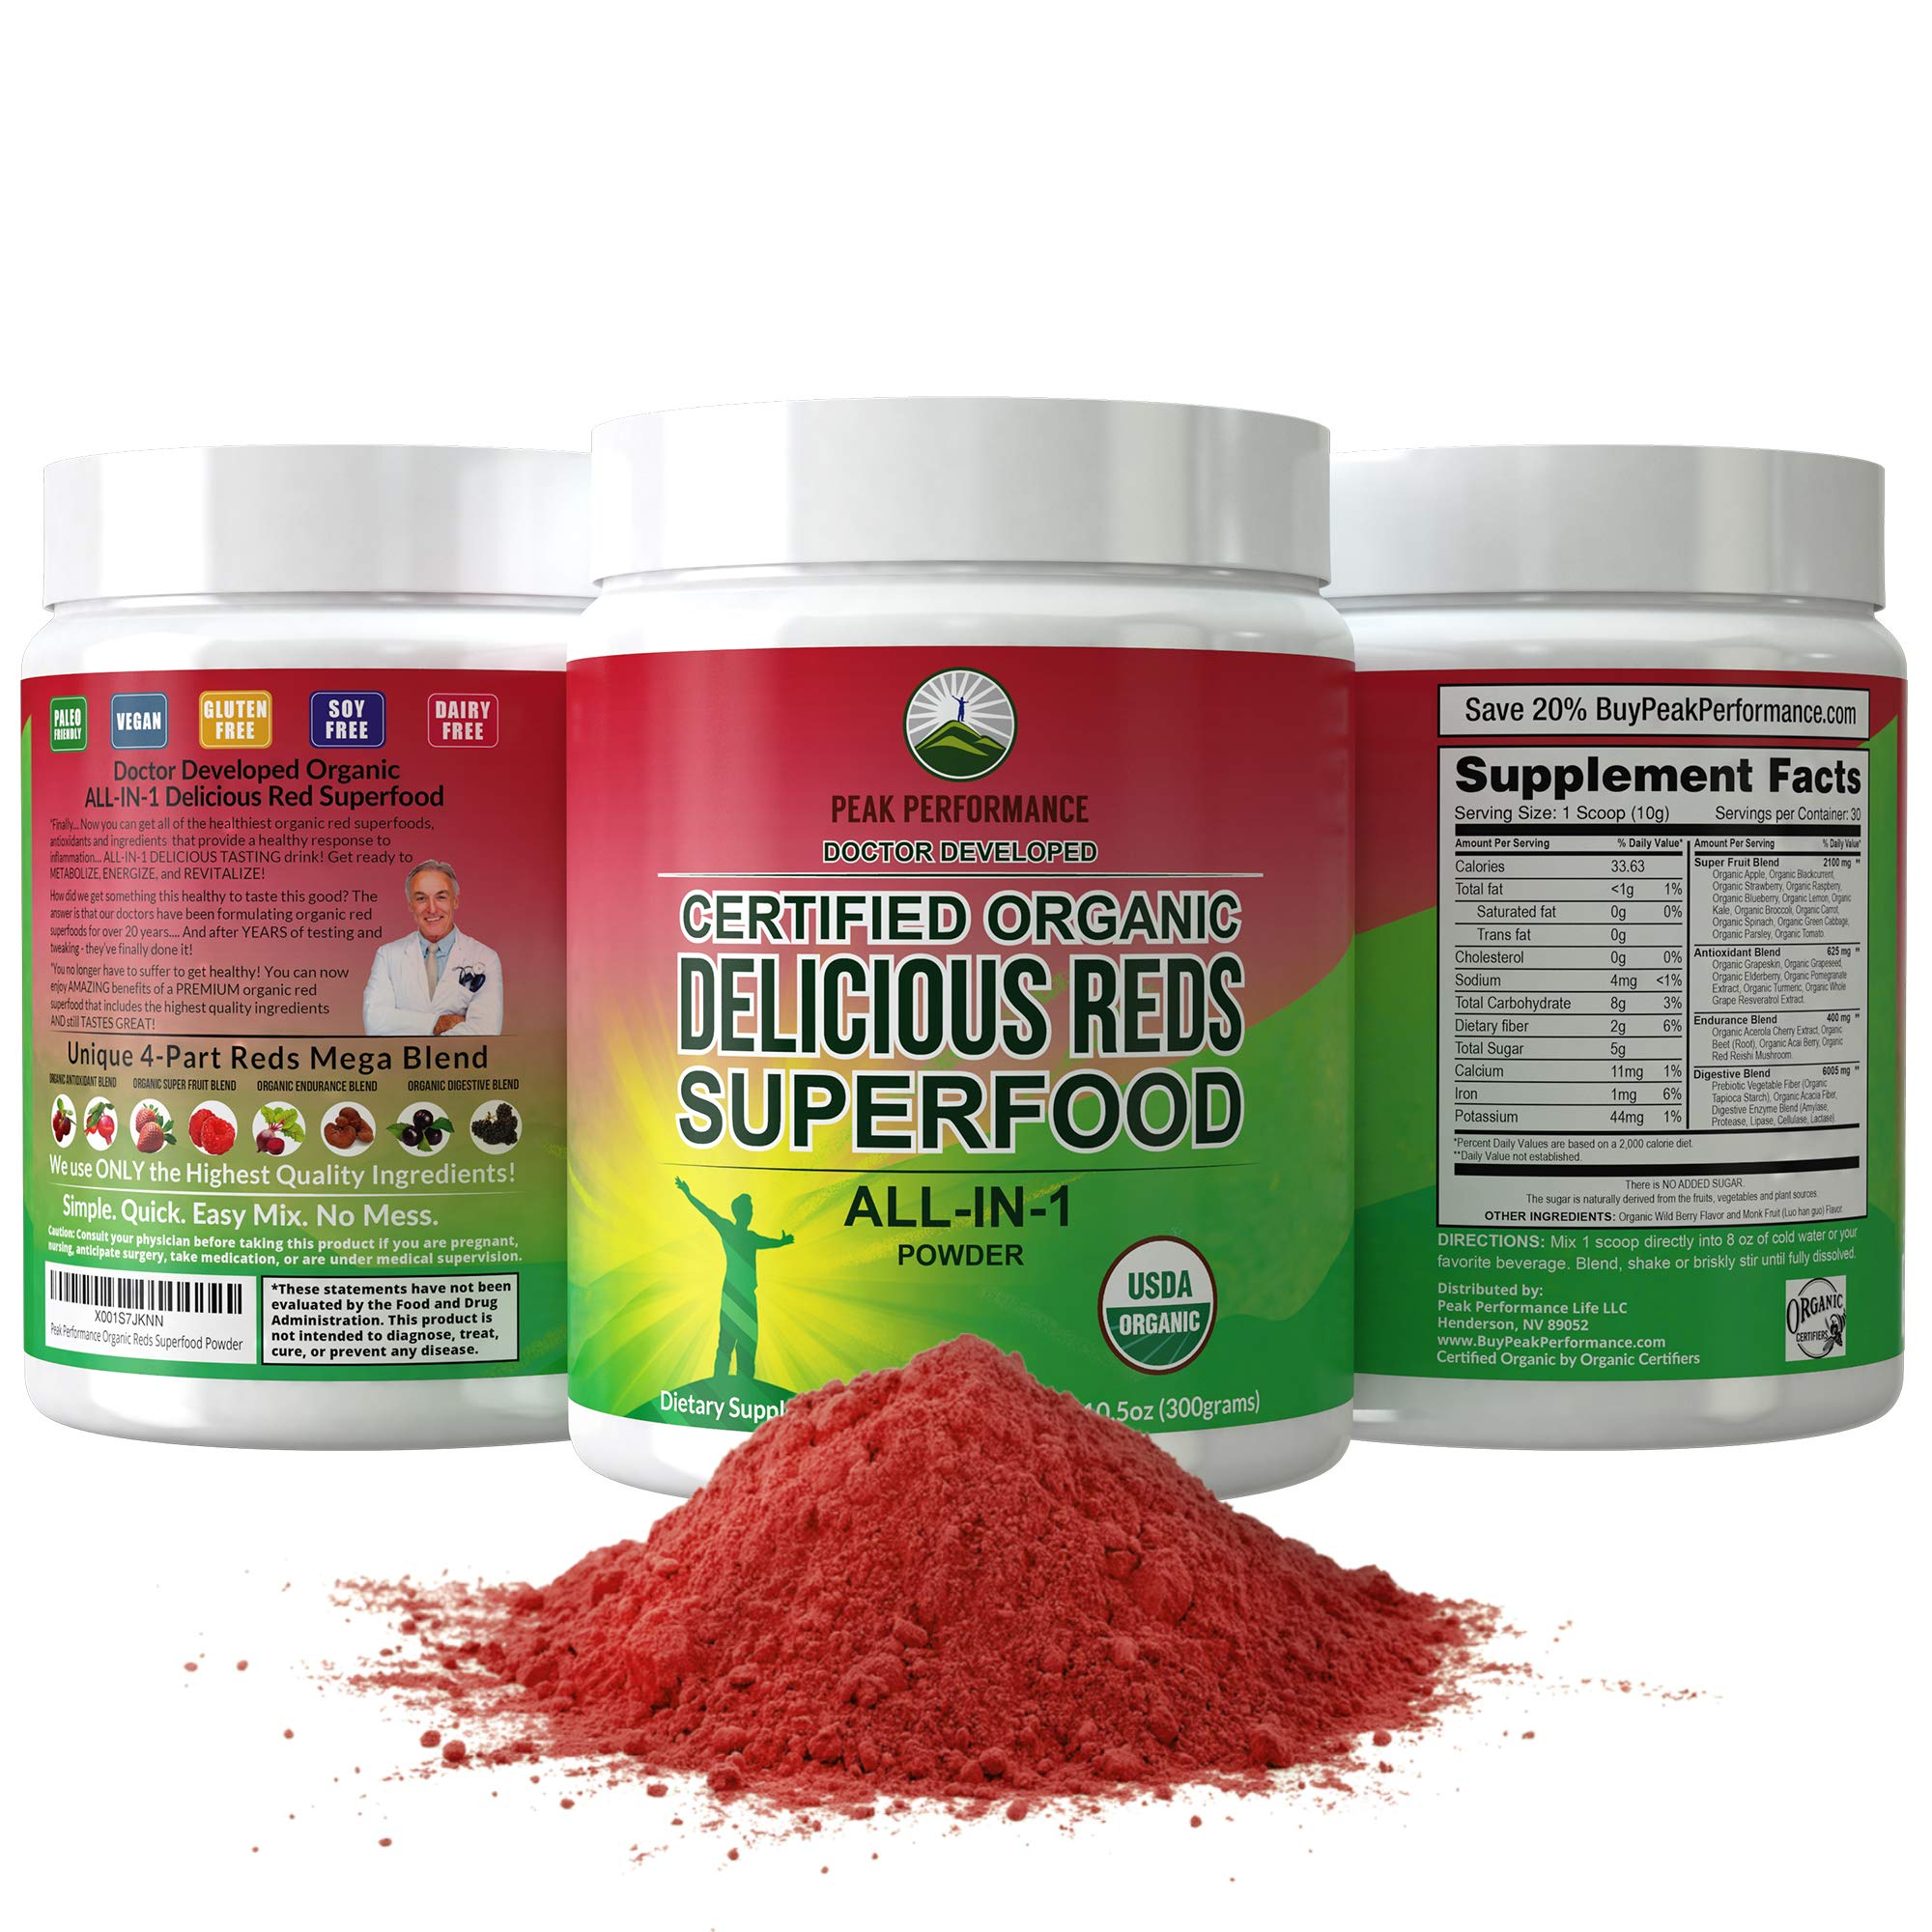 Organic Reds Superfood Powder. Best Tasting Organic Red Juice Super Food with 25+ All Natural Ingredients and Polyphenols. Vital for Max Energy + Detox. Raspberry, Elderberry, Beetroot